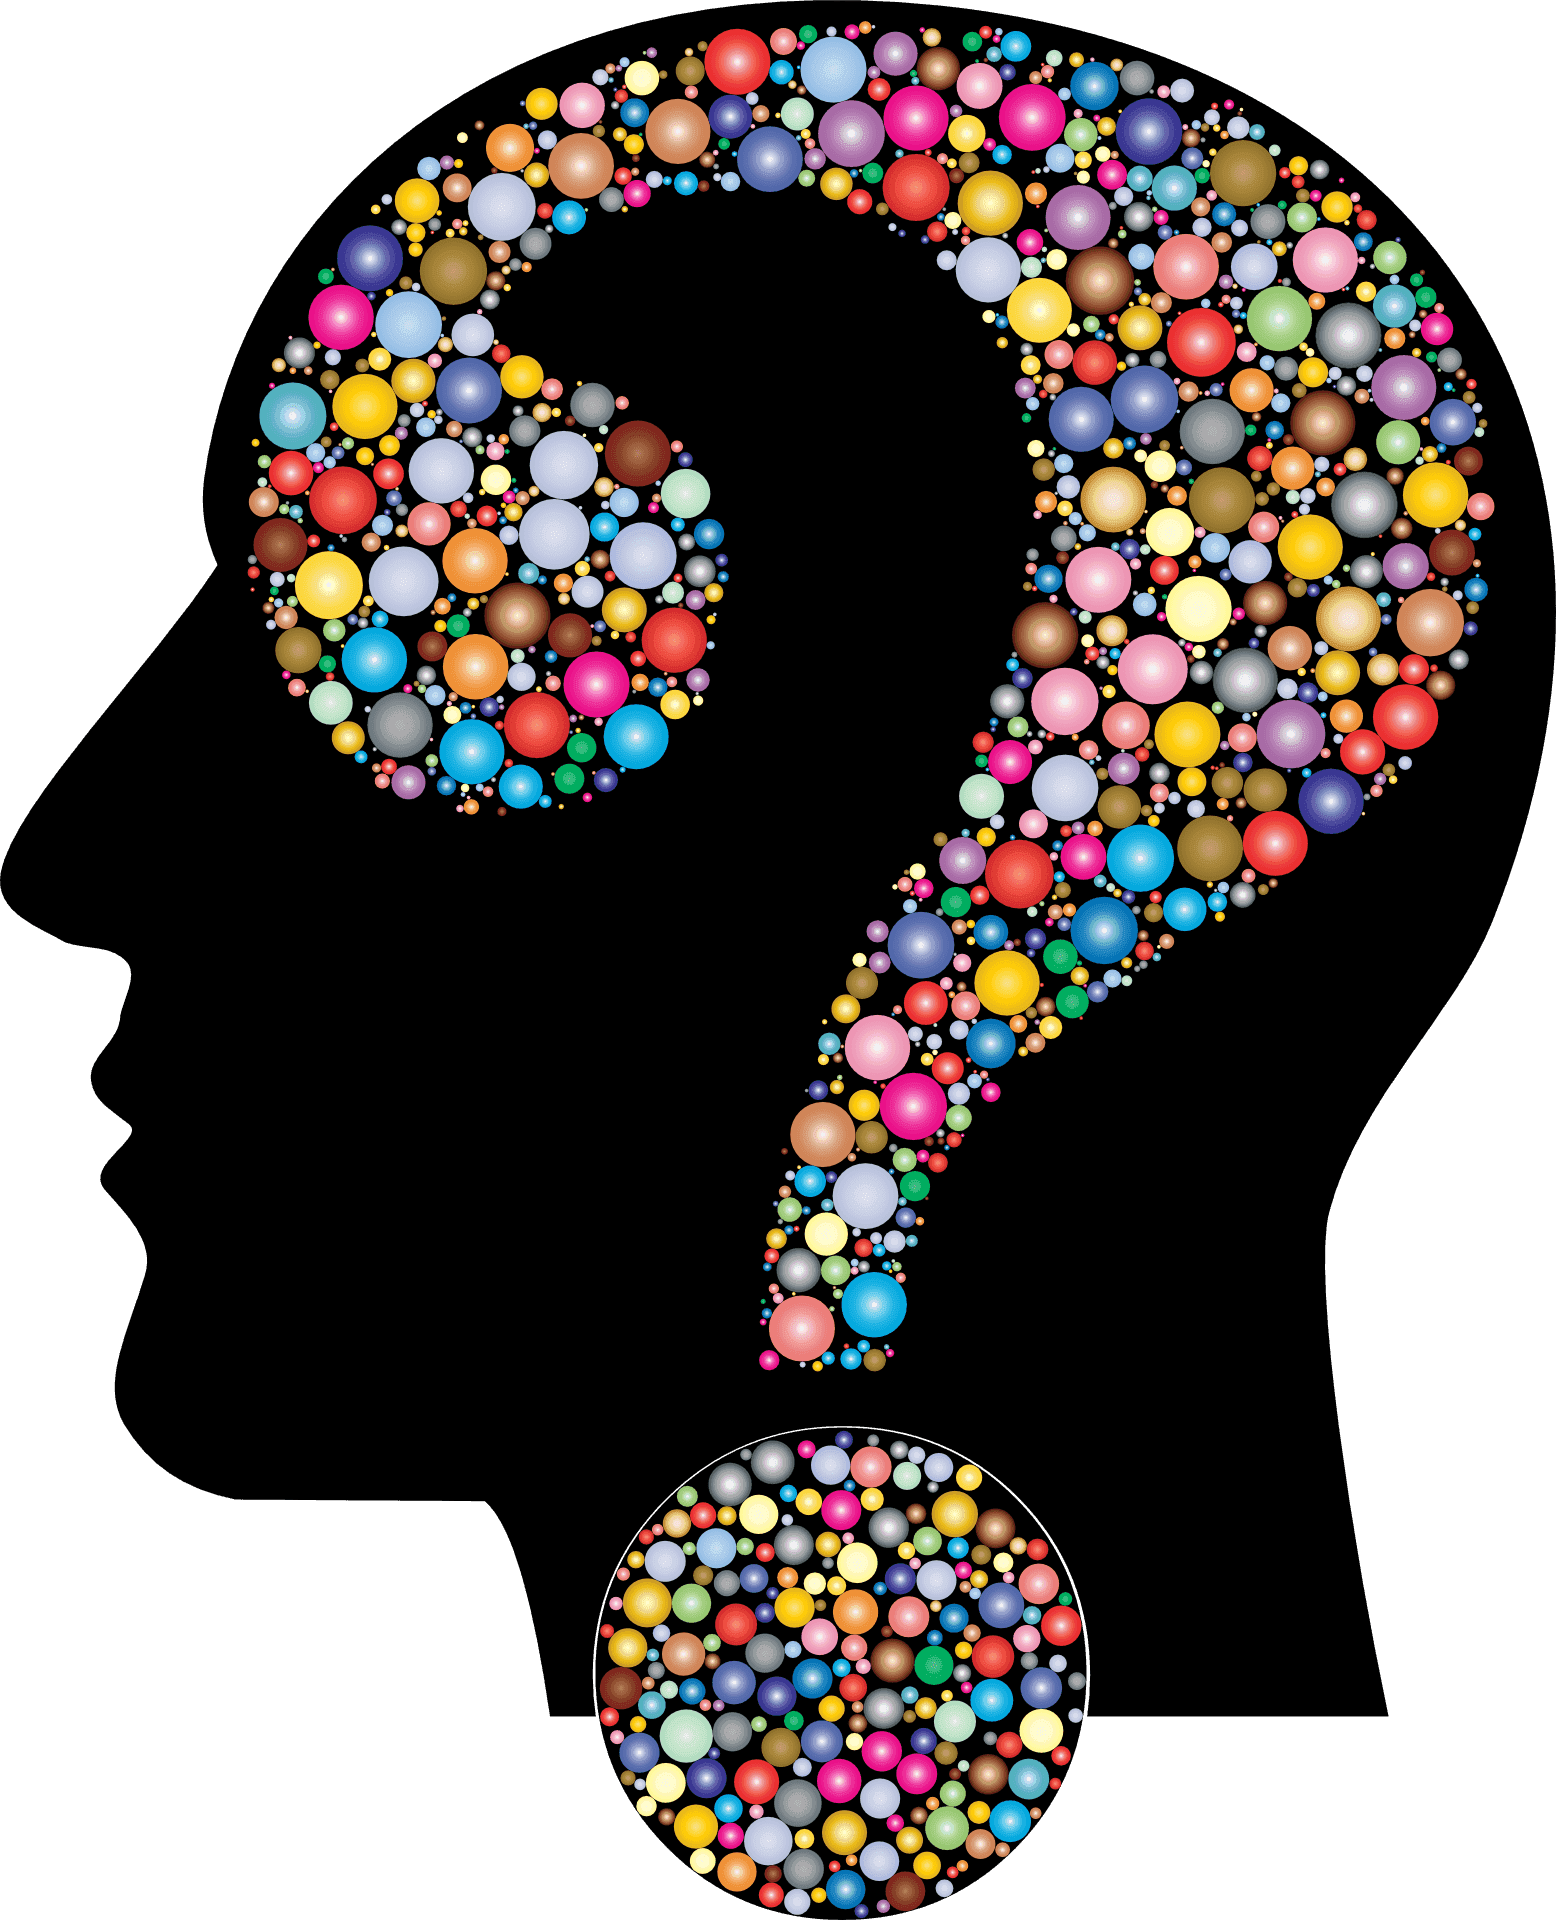 A question mark making up the human brain